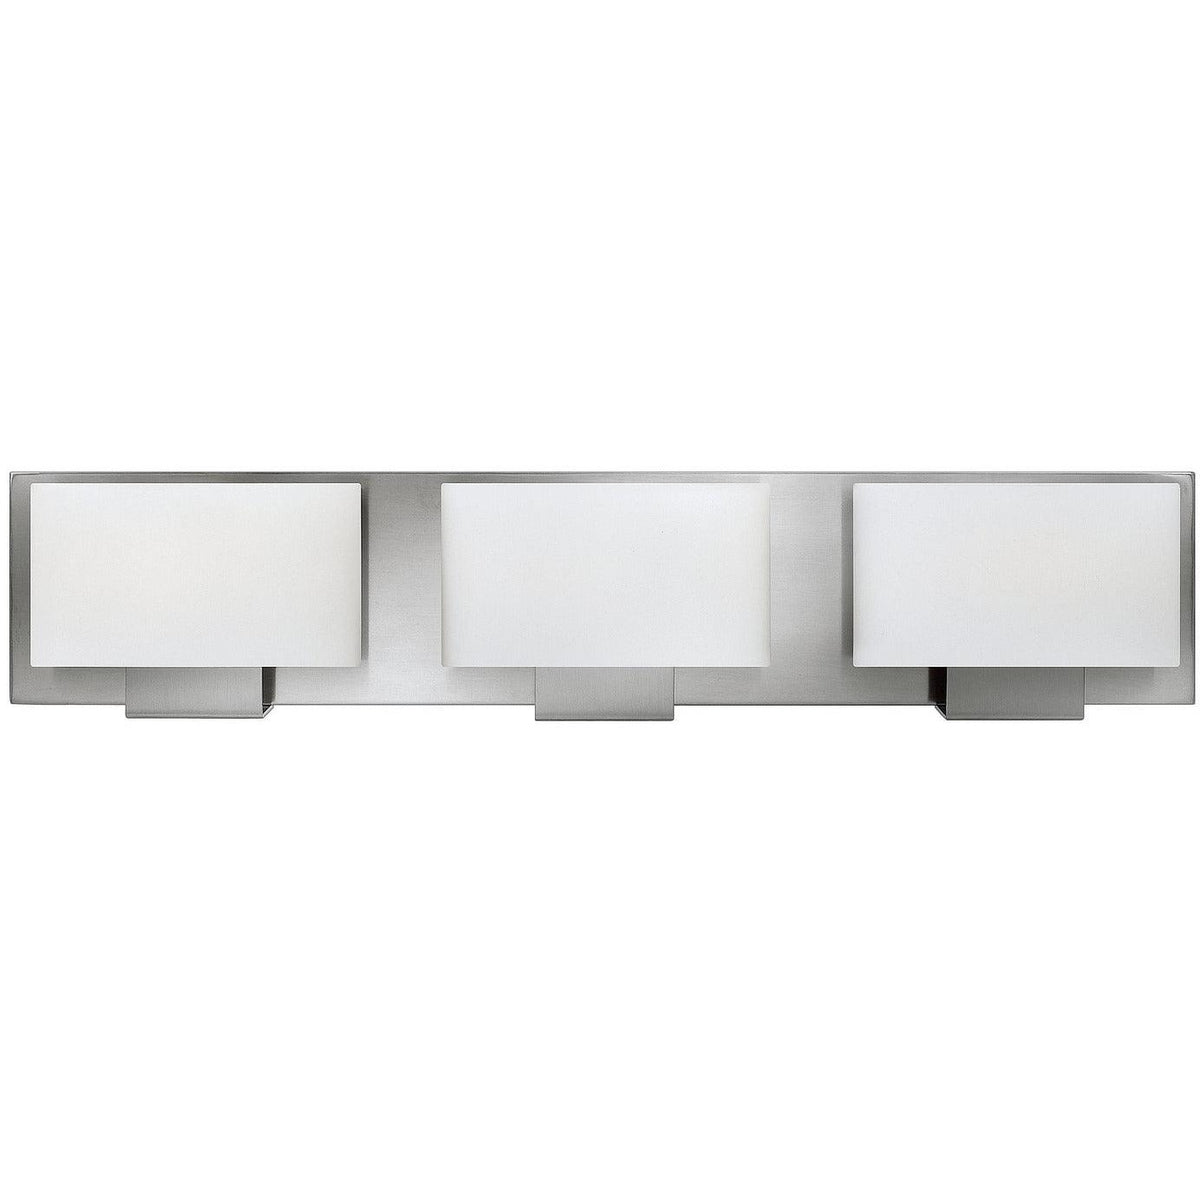 Hinkley Canada - 53553BN - Three Light Bath - Mila - Brushed Nickel